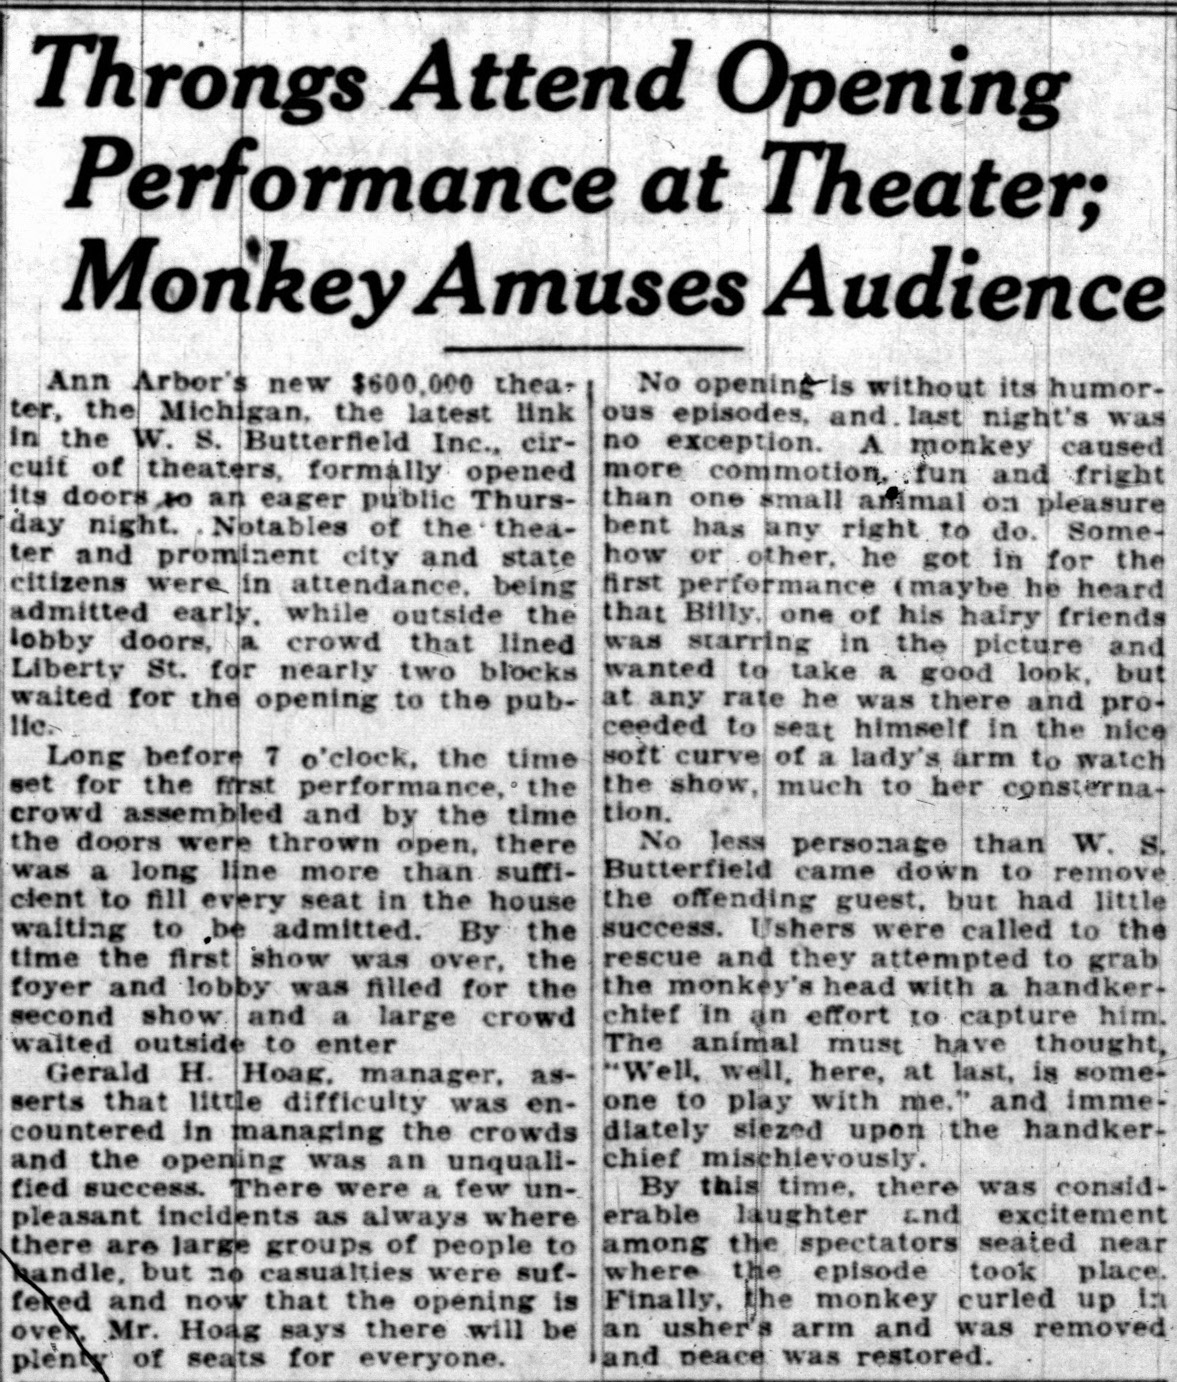 Throngs Attend Opening Performance at Theater; Monkey Amuses Audience image